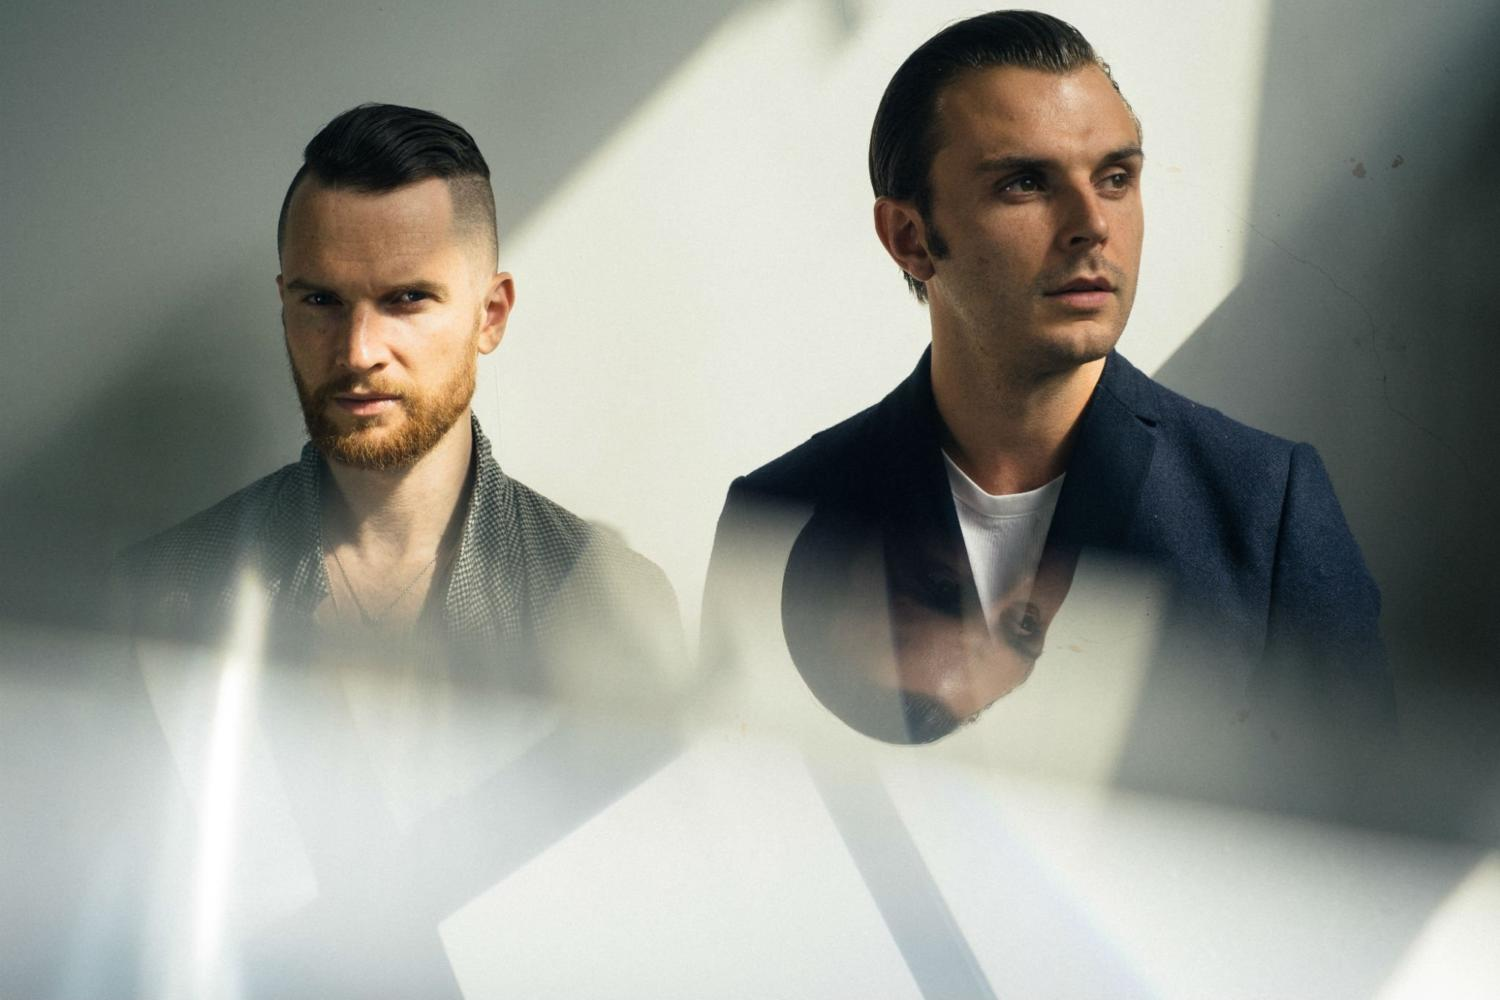 Hurts have announced new album 'Desire'